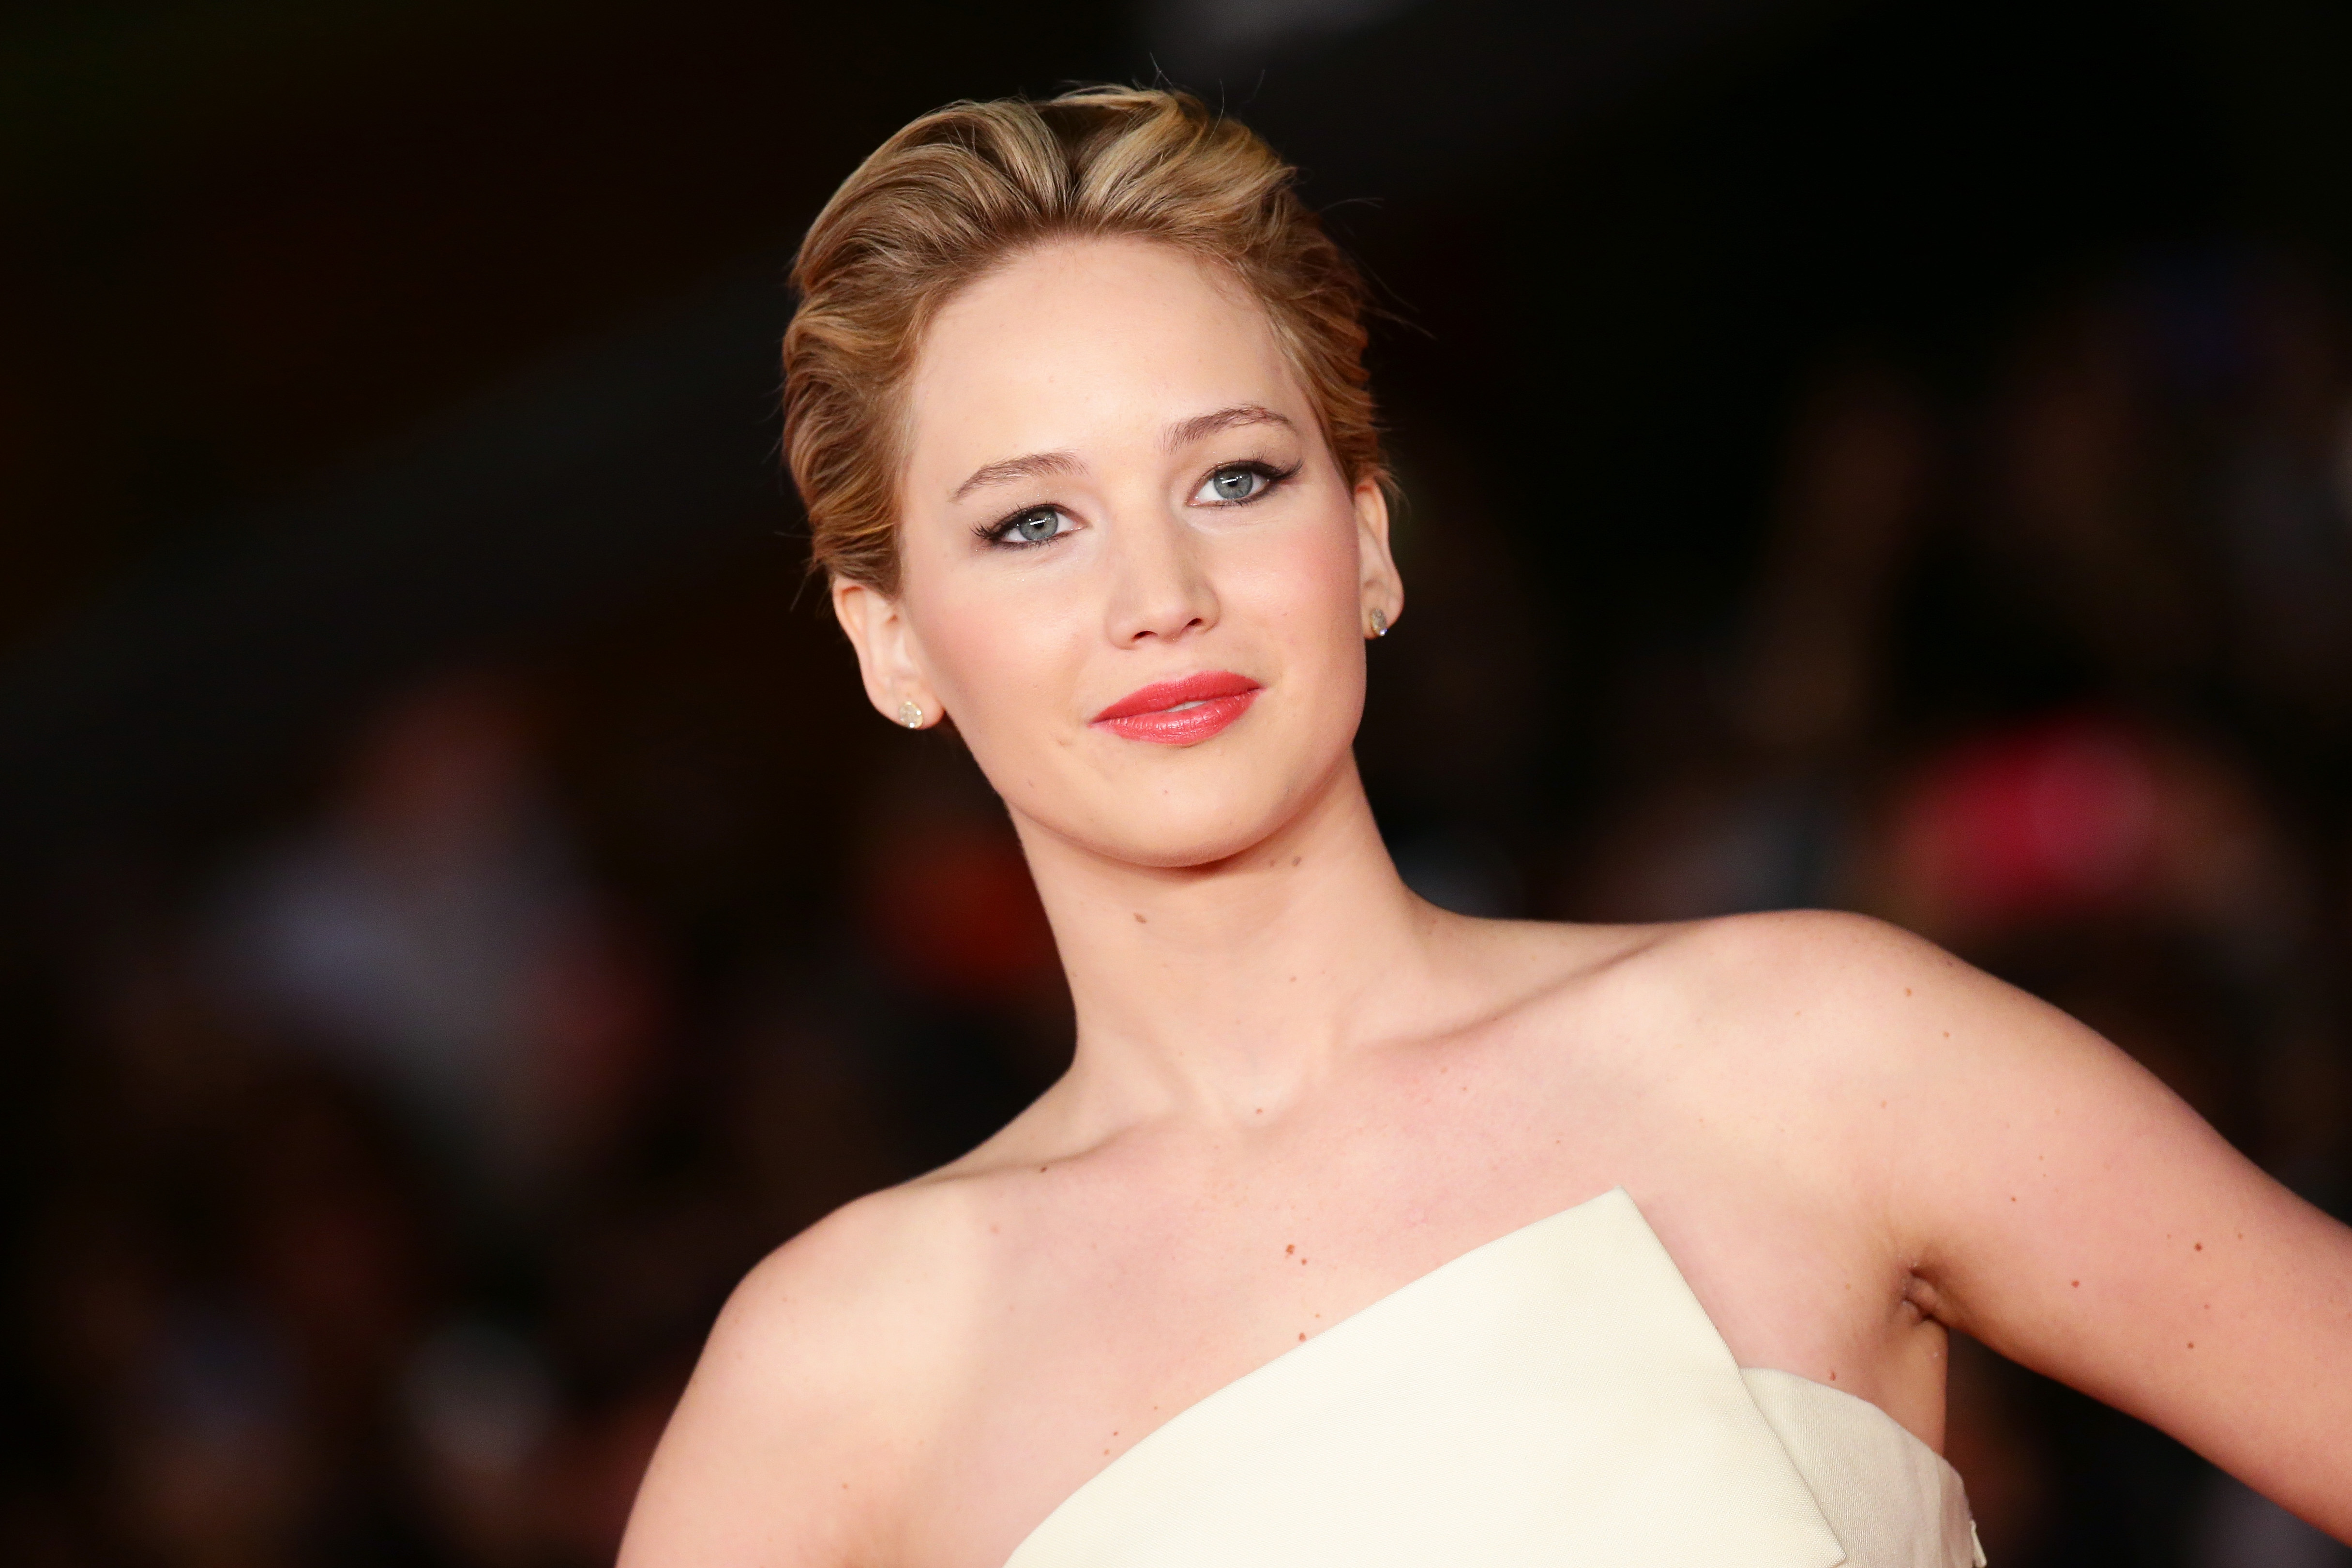 'The Hunger Games: Catching Fire' Premiere  - The 8th Rome Film Festival